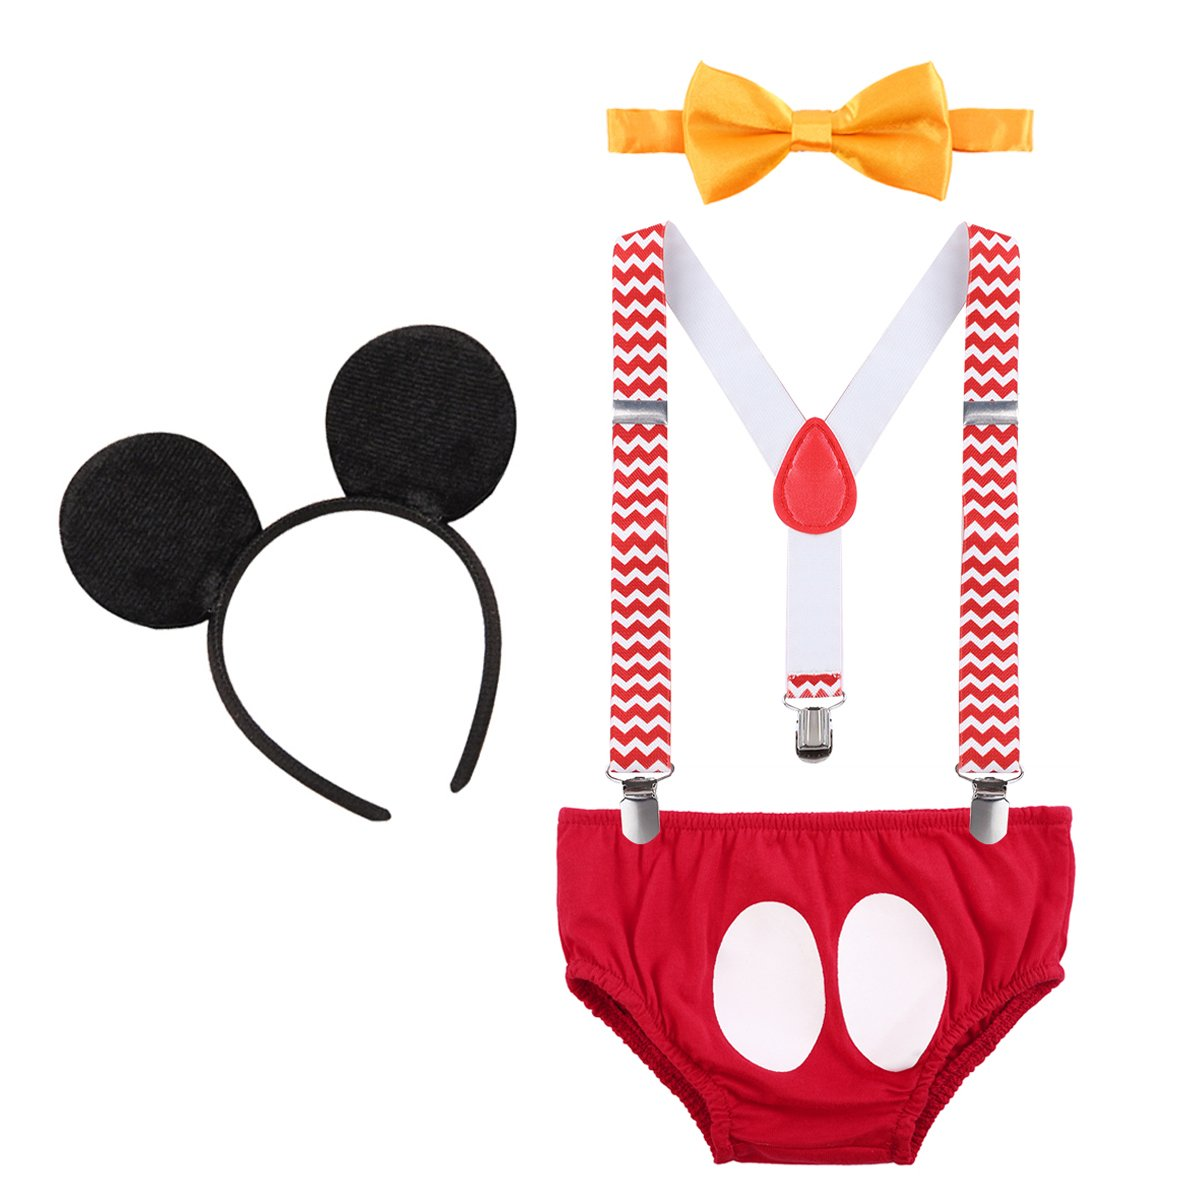 Newborn Baby Boys Girls Cute Mouse 1st Birthday Halloween Costume Cake Smash Bloomers Shorts + Adjustable Y Braces/Suspender + Bow Tie + Ears 4PCS Outfit Photo Shoot